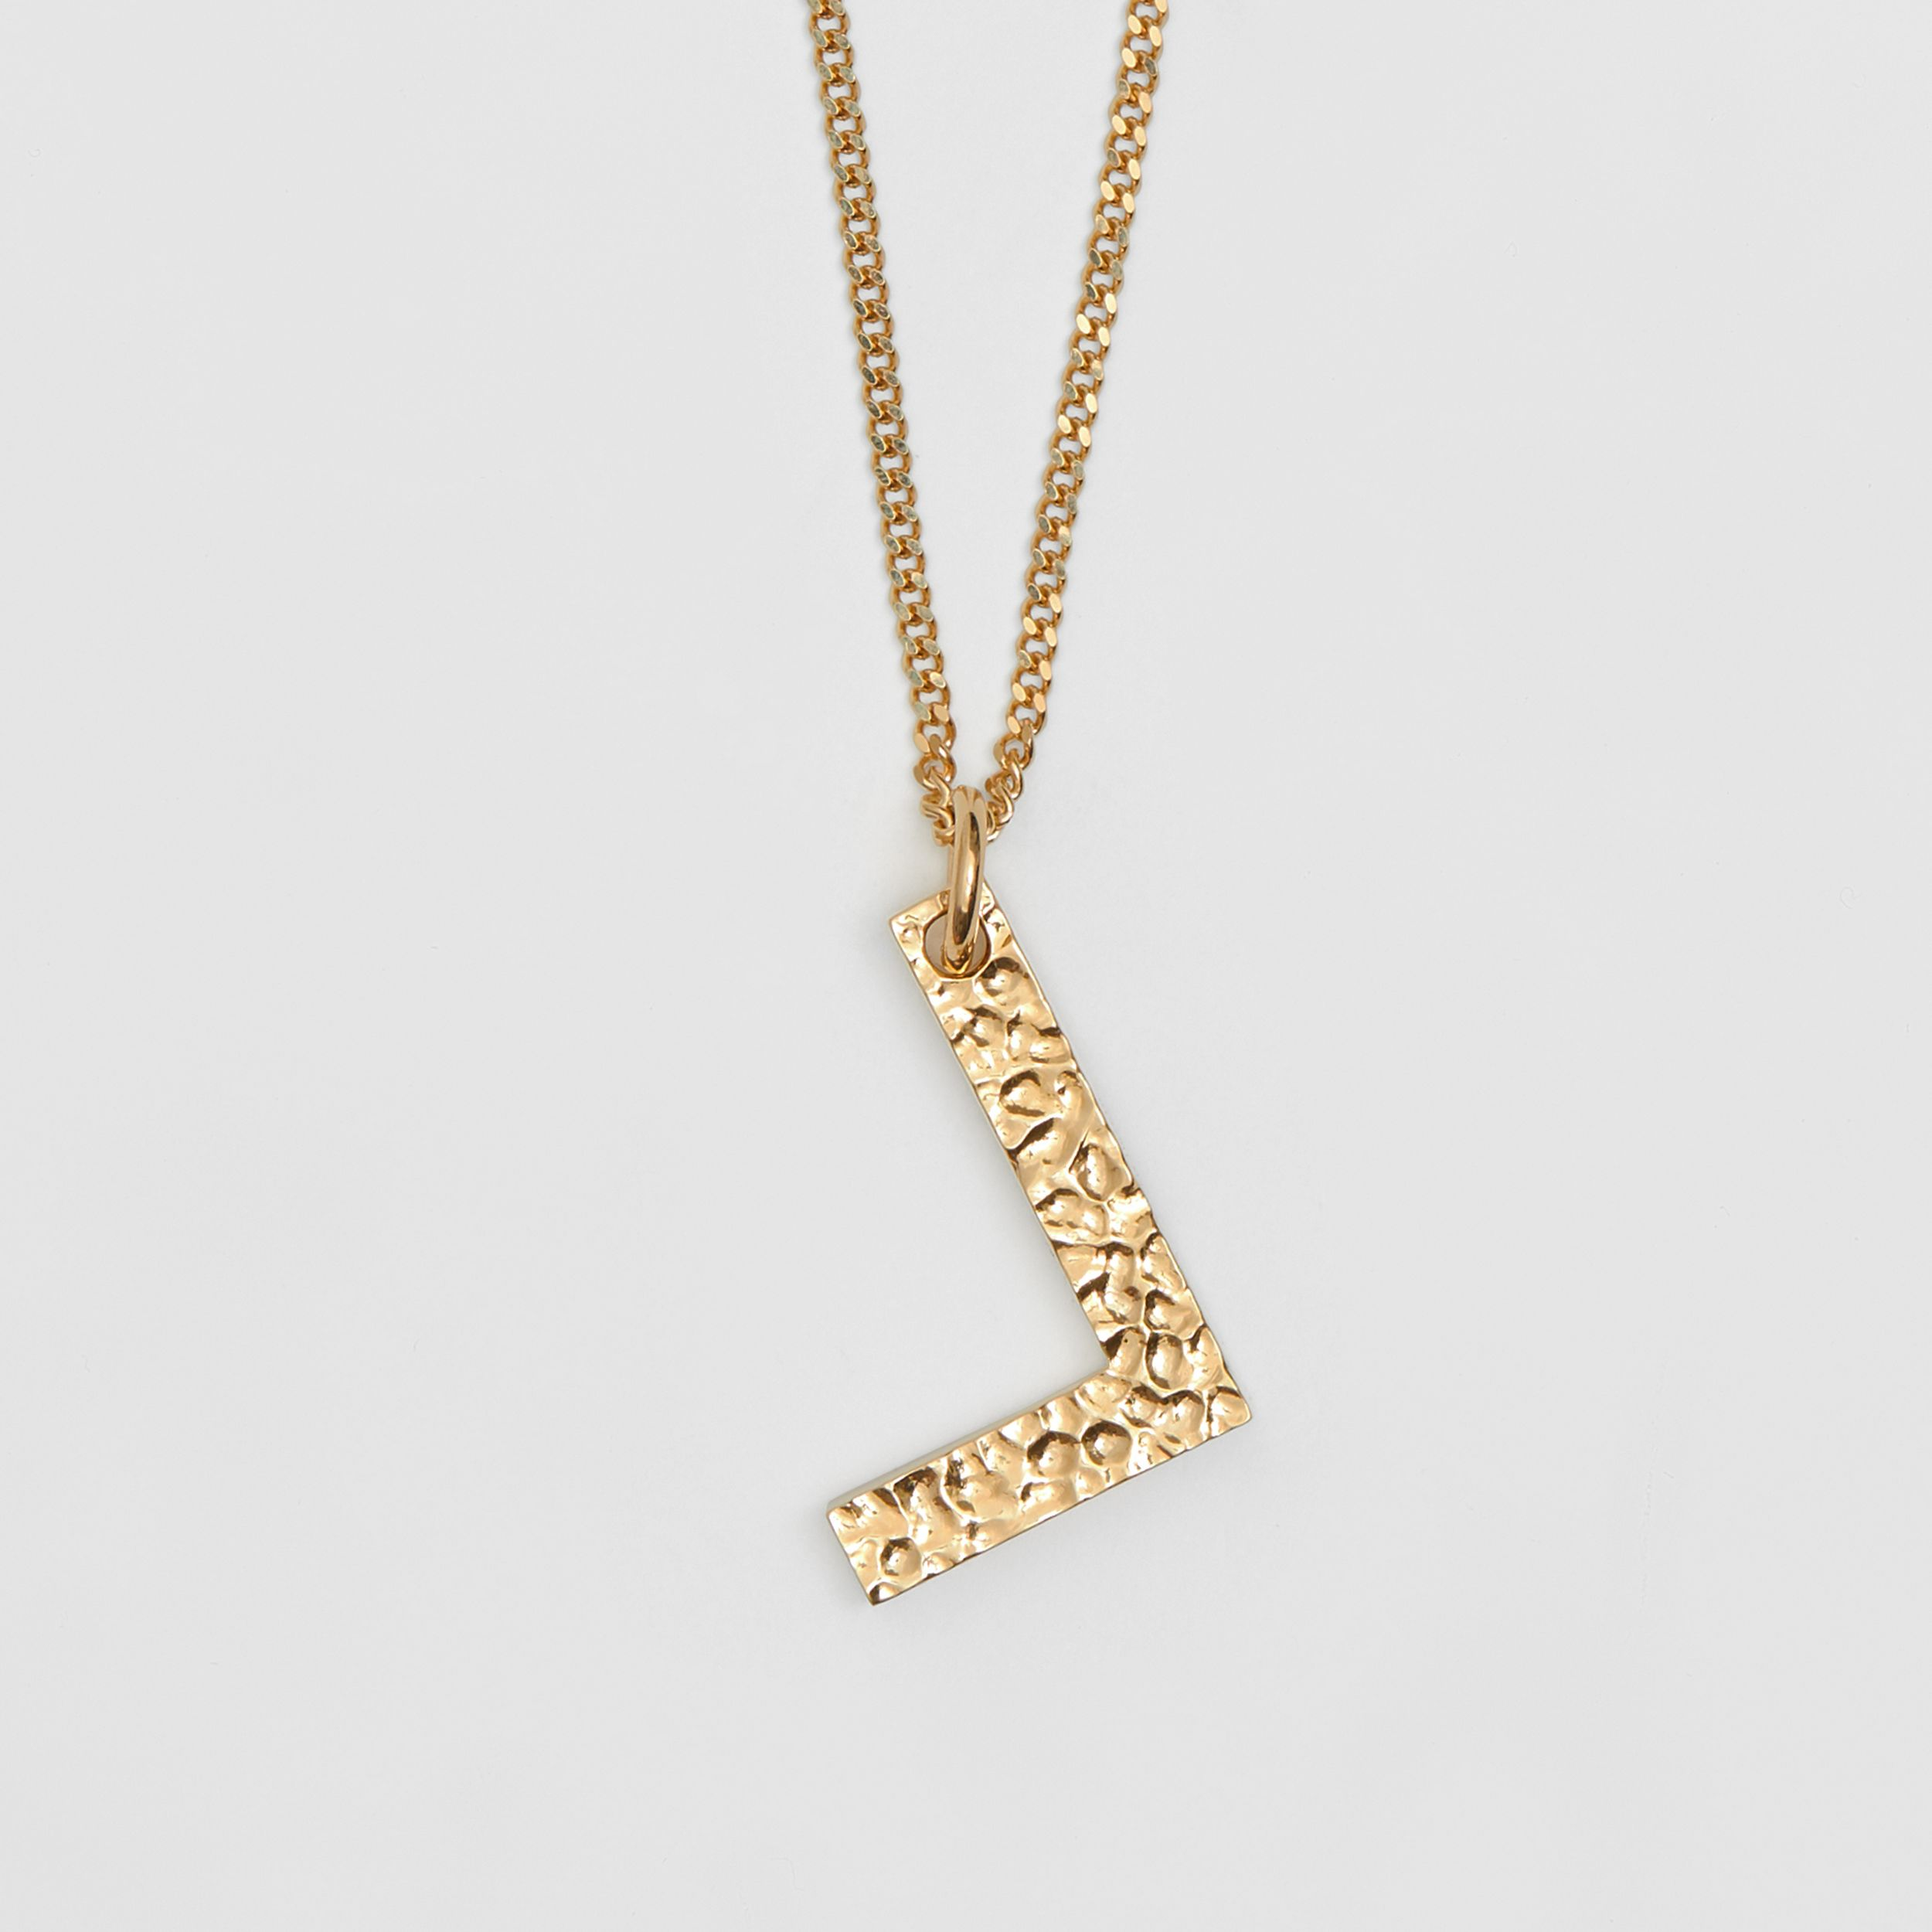 'L' Alphabet Charm Gold-plated Necklace in Light - Women | Burberry - 3